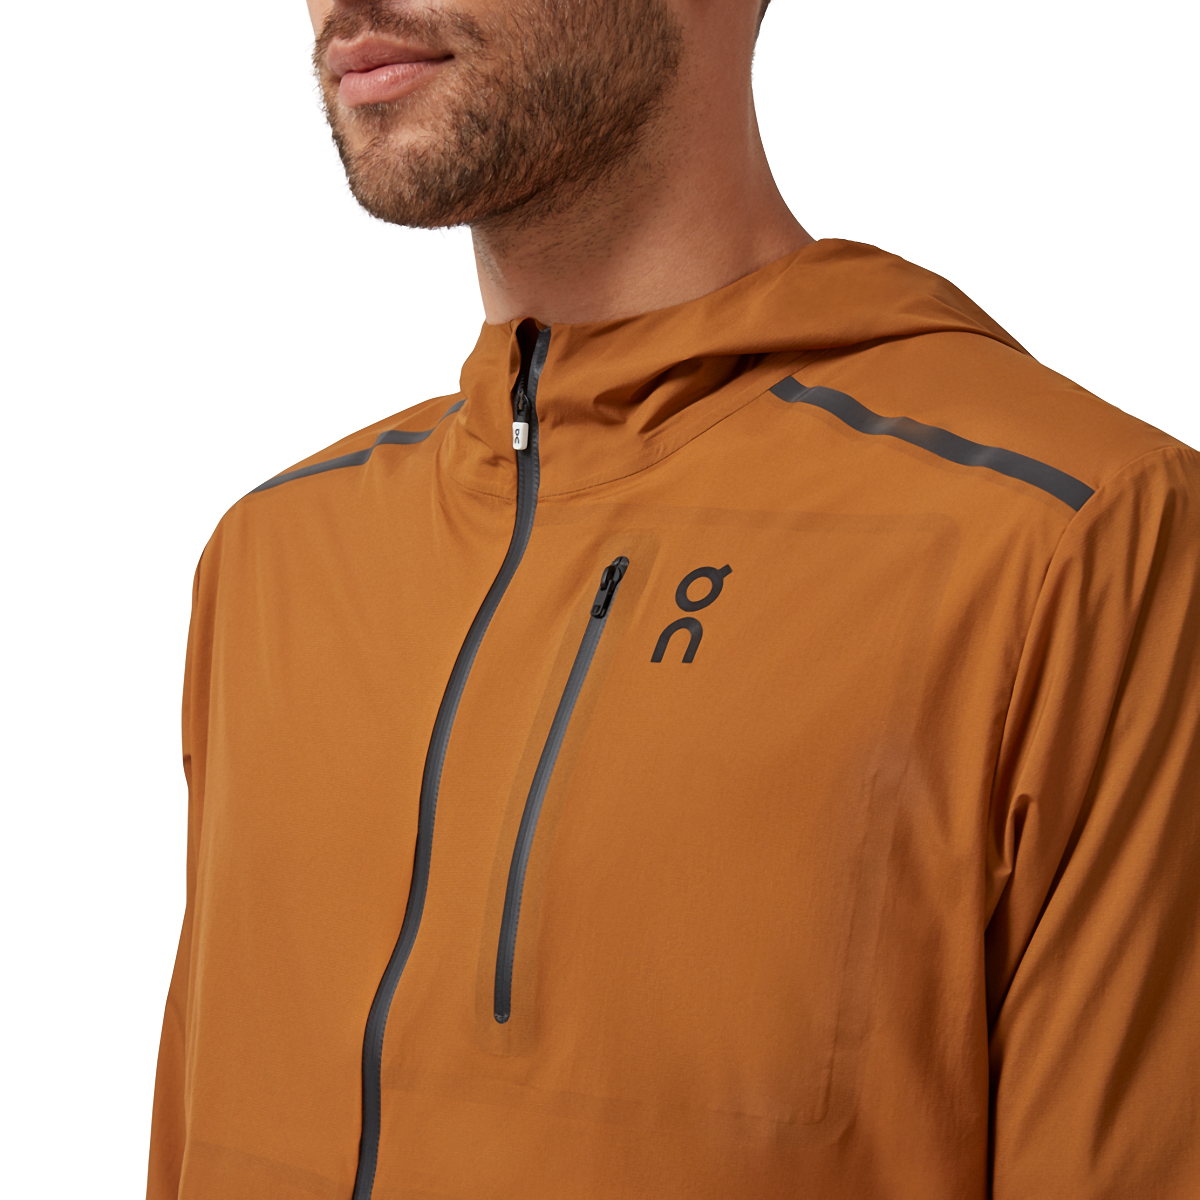 Men's On Weather Jacket - Color: Pecan - Size: S, Pecan, large, image 2